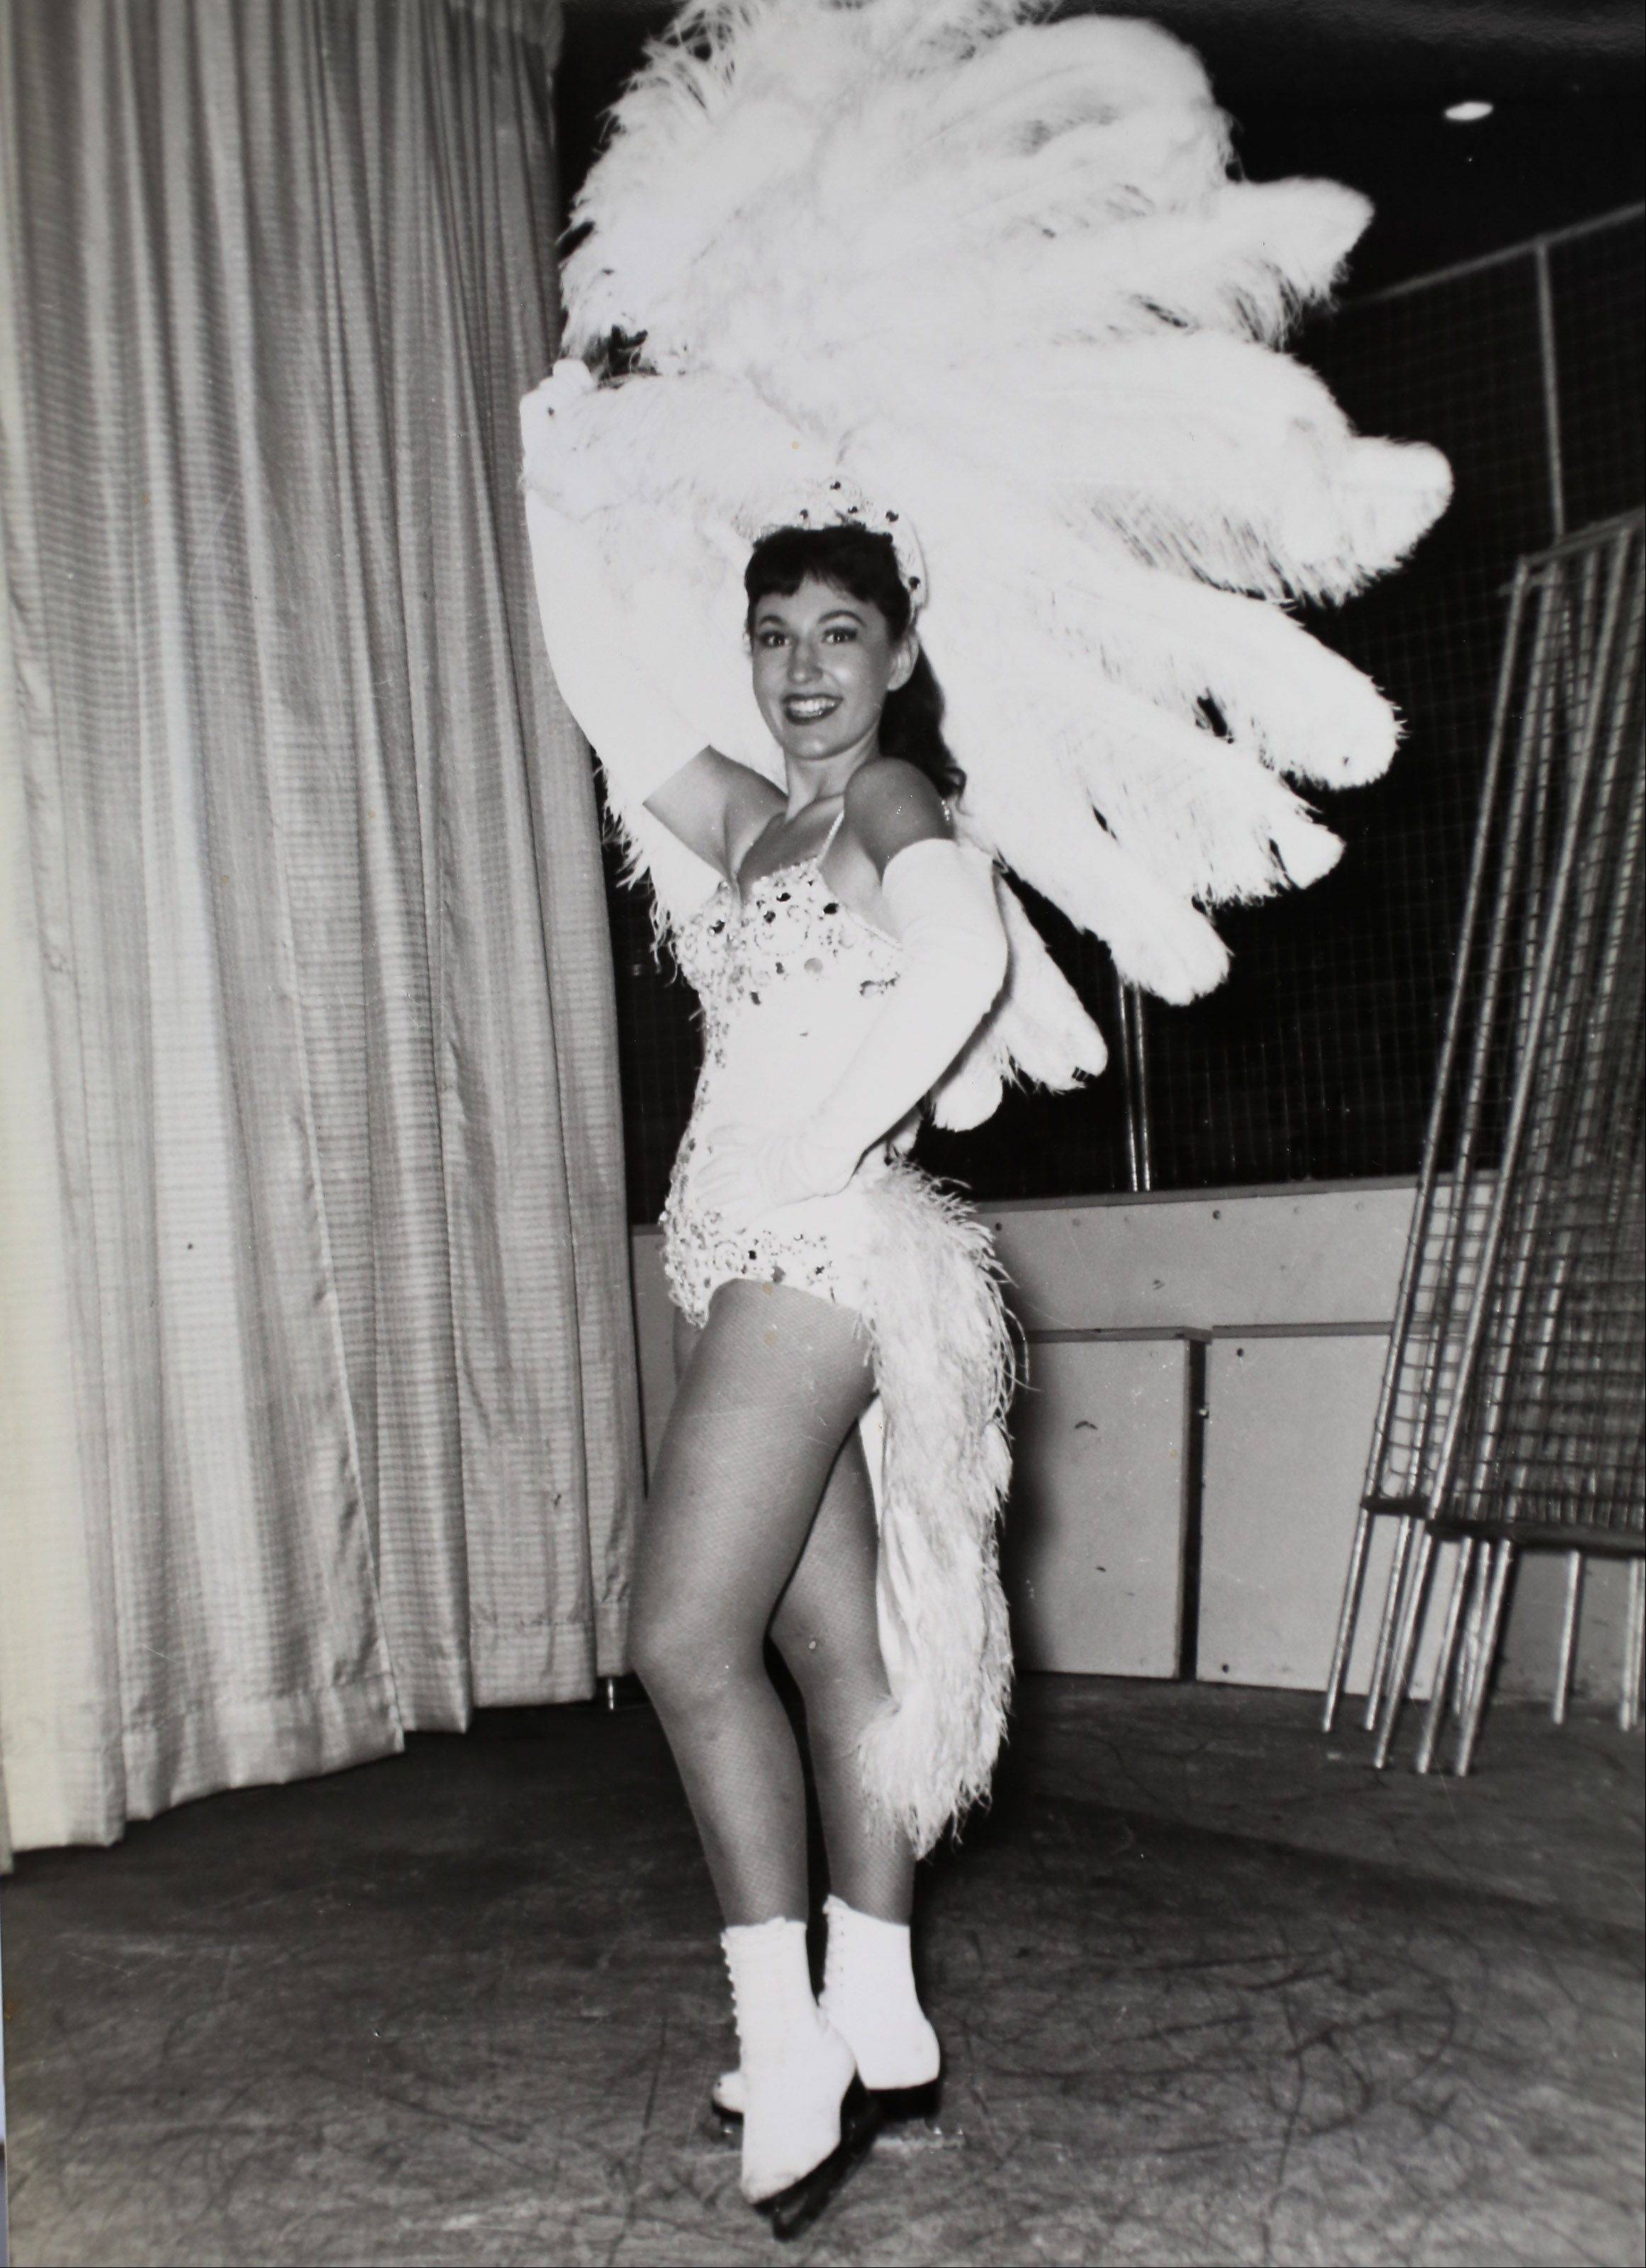 Ice skating teacher Karen Kay Lavris in a portrait when she performed with the Ice Capades as a young woman.